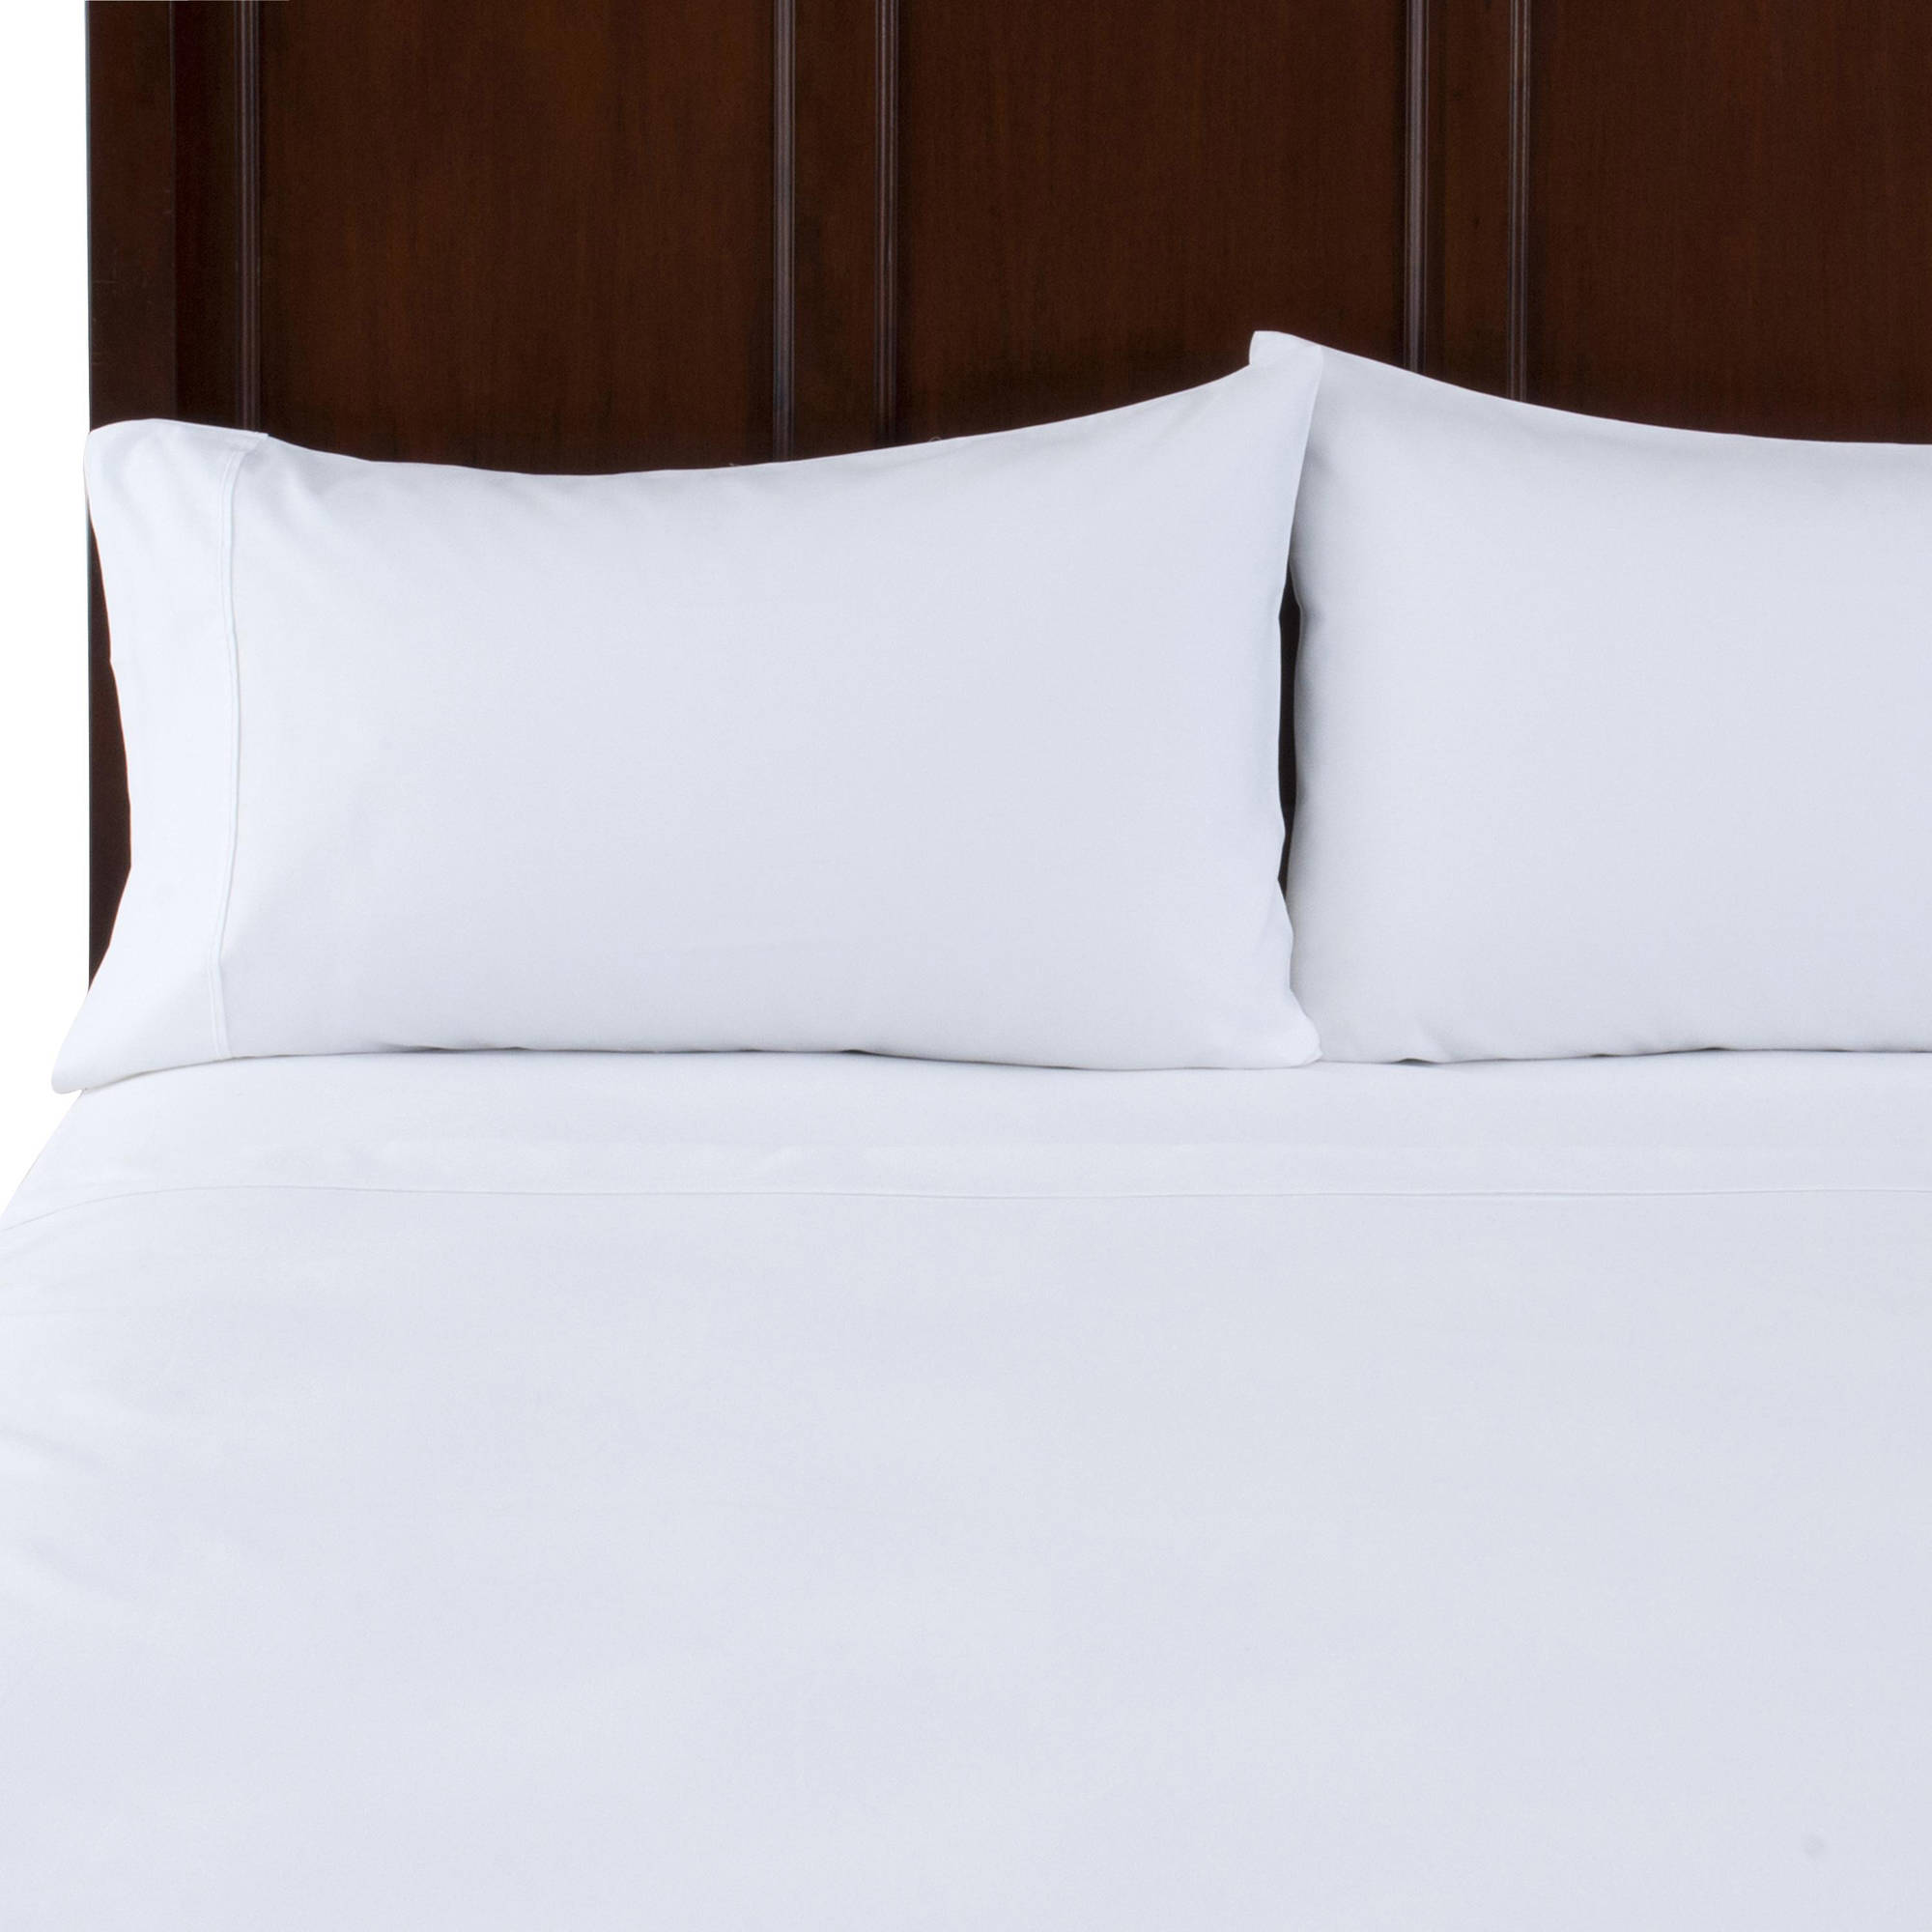 comfort fitted comforter hotel xlrg sheet st signature sheets wh product regis str boutique white store